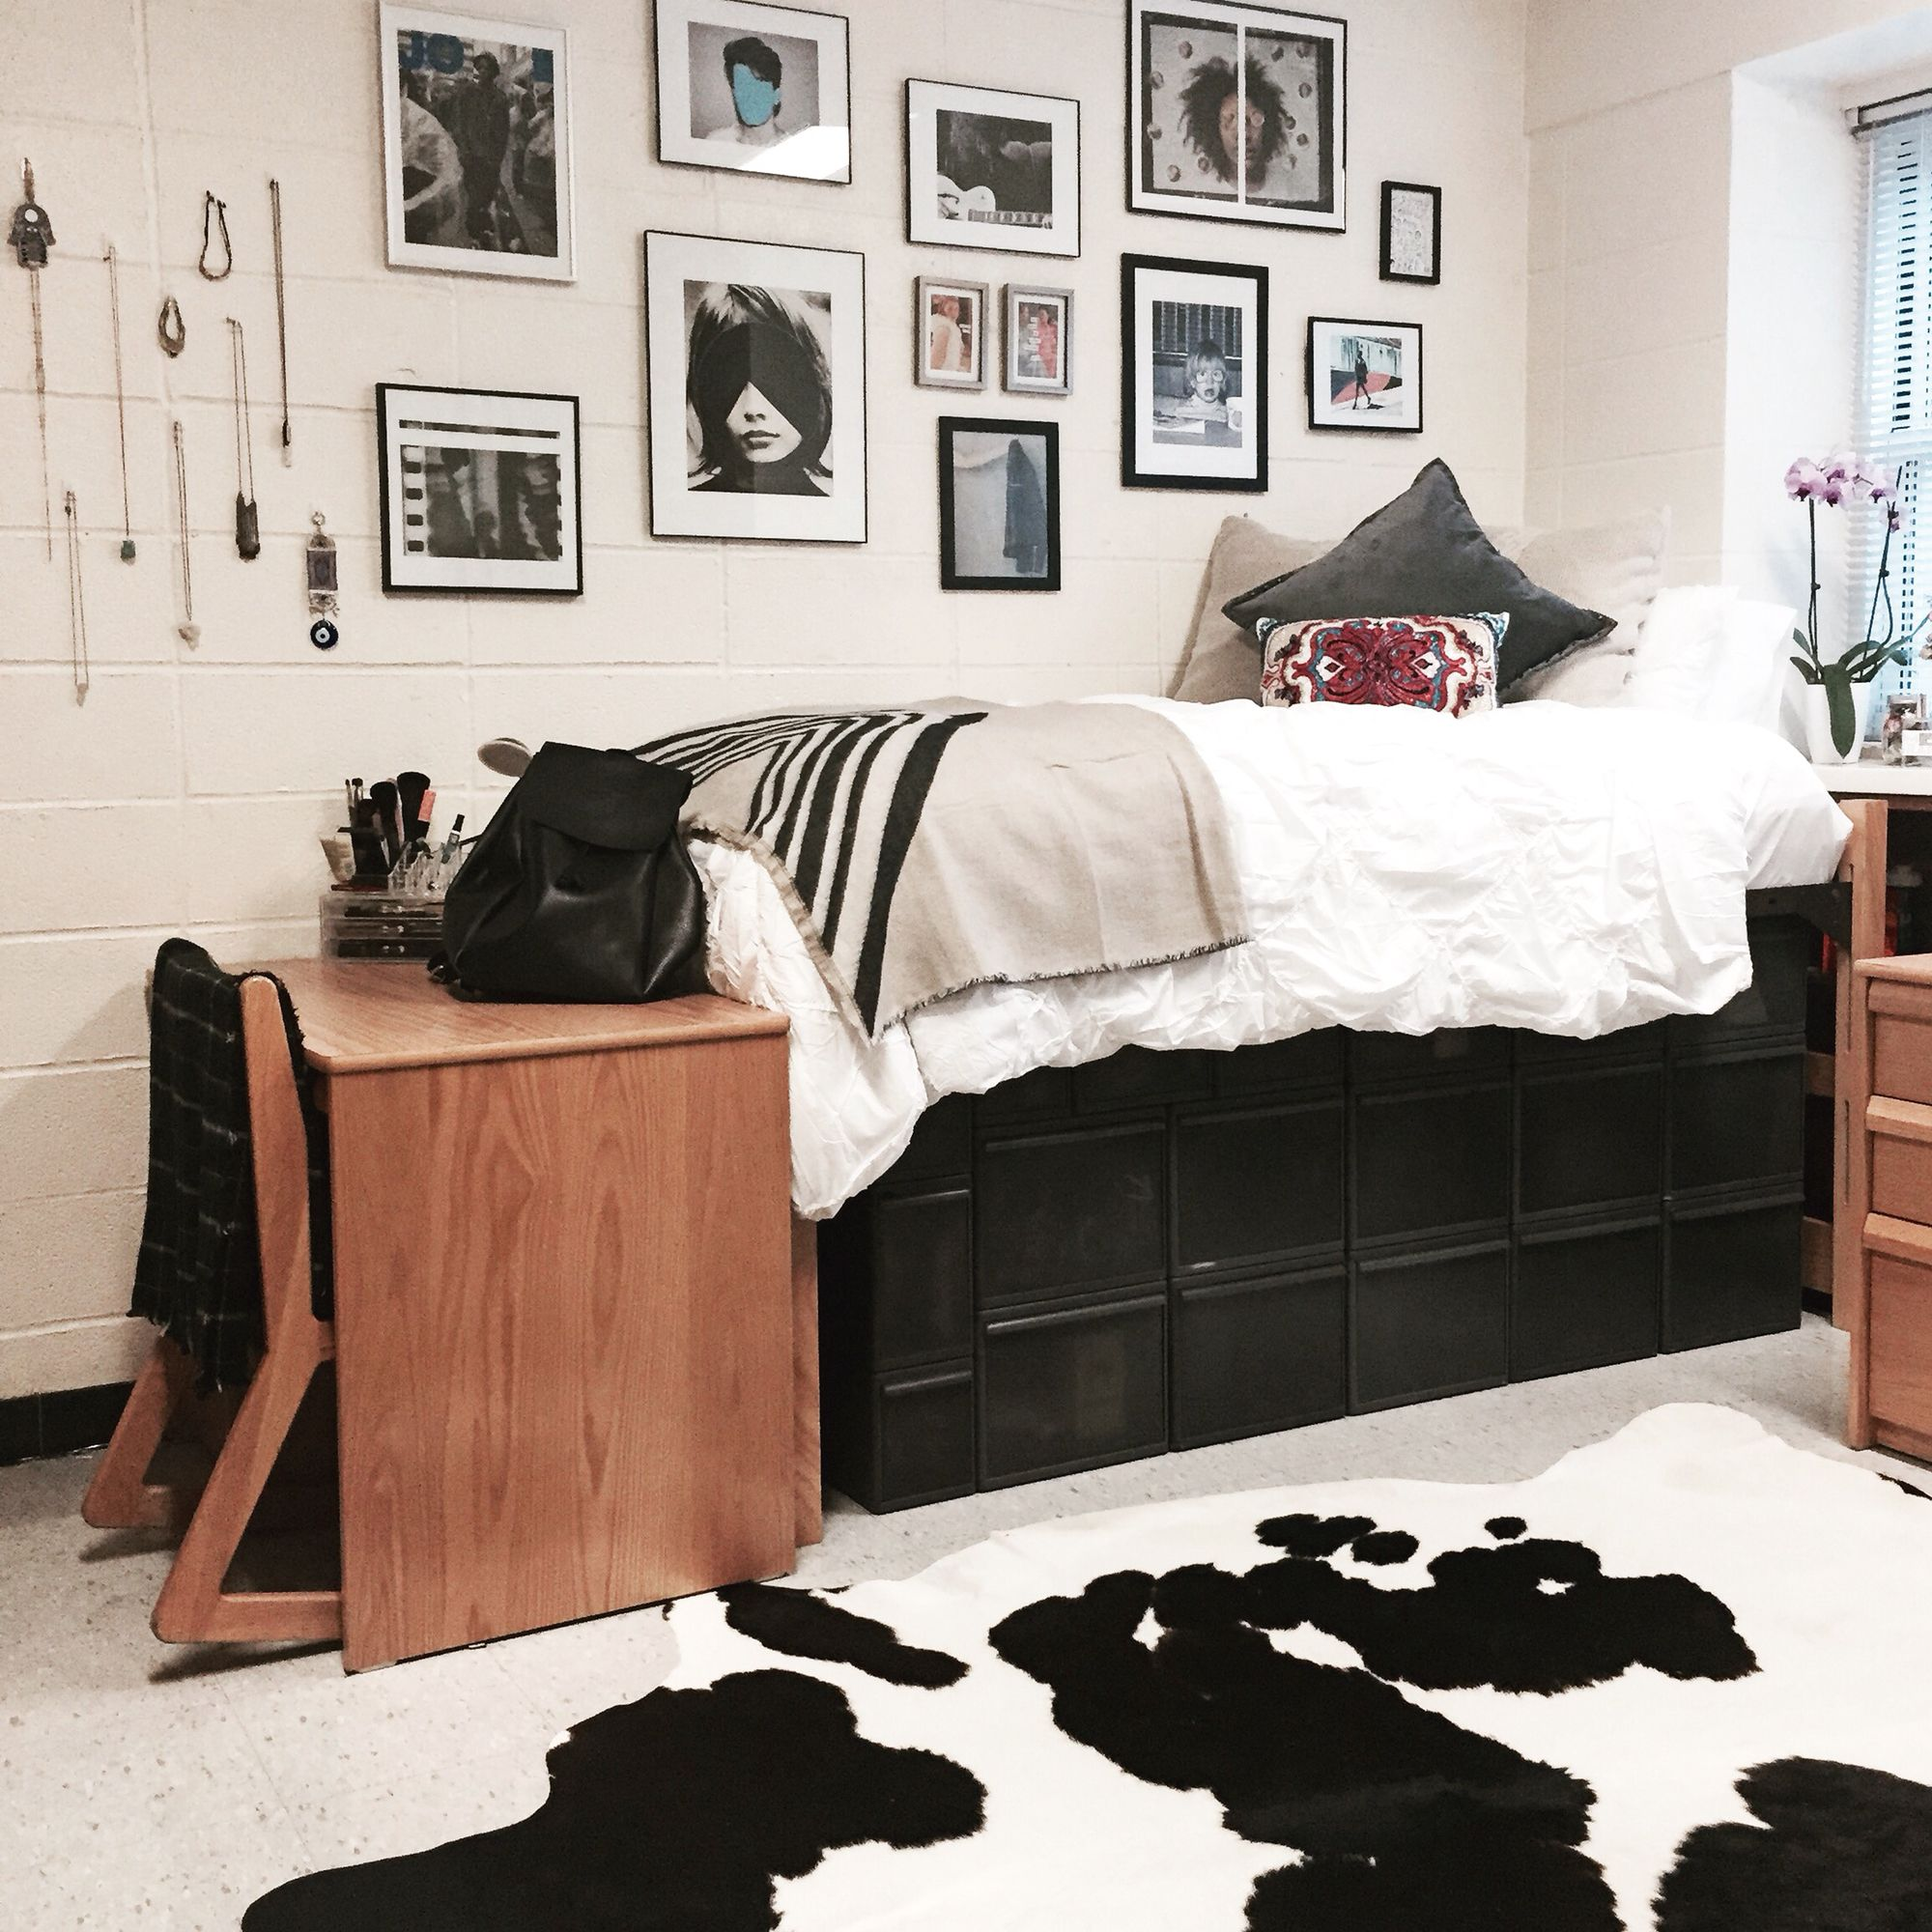 Hall And Bedroom Colours Bedroom Curtains Laura Ashley Pink And Black Bedroom One Bedroom Apartment Layout Design: Columbia University Carman Hall Dorm